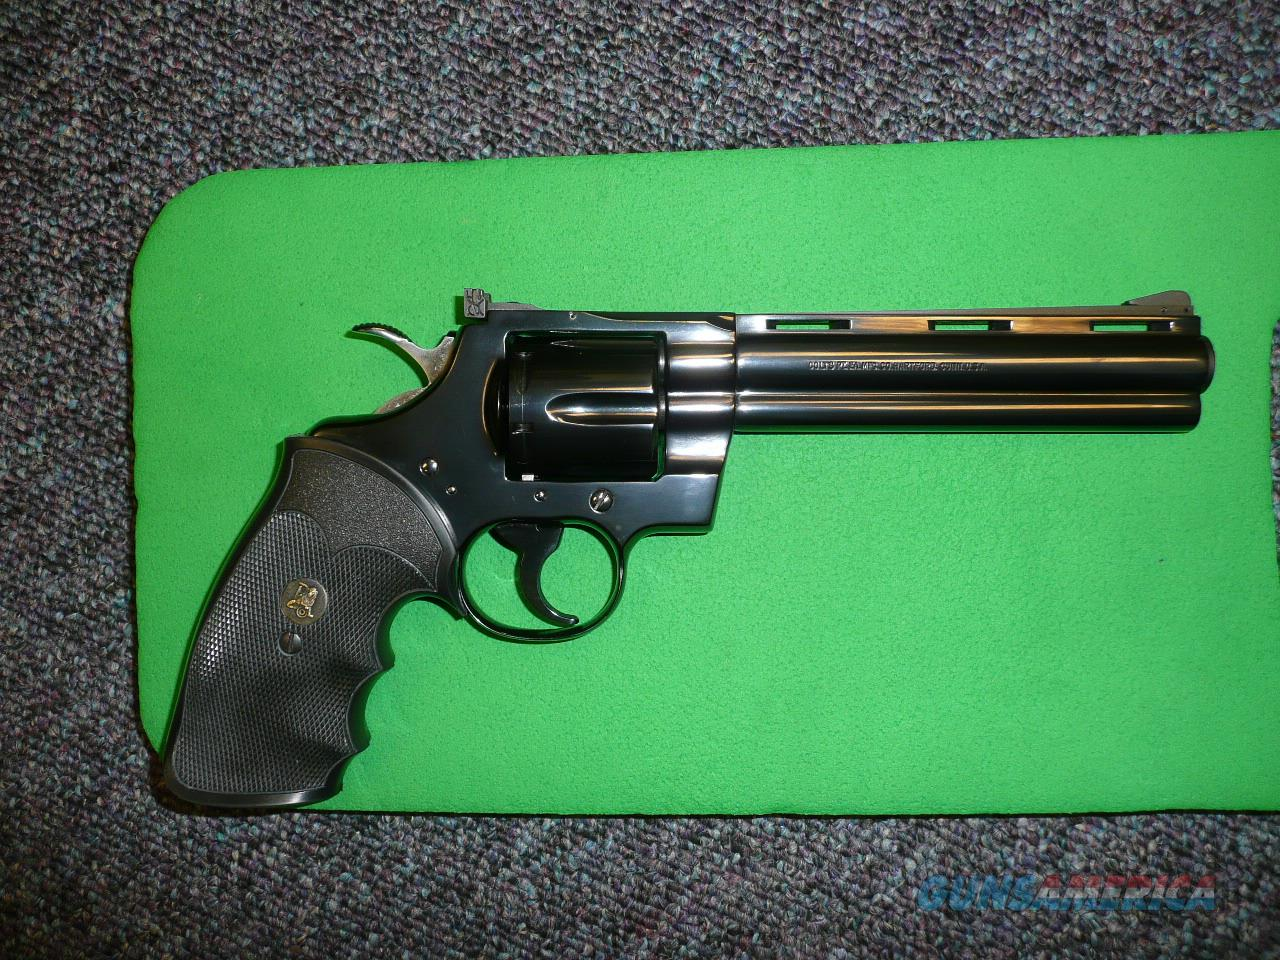 Like New Colt Python 6 inch Blue with box and papers  Guns > Pistols > Colt Double Action Revolvers- Modern